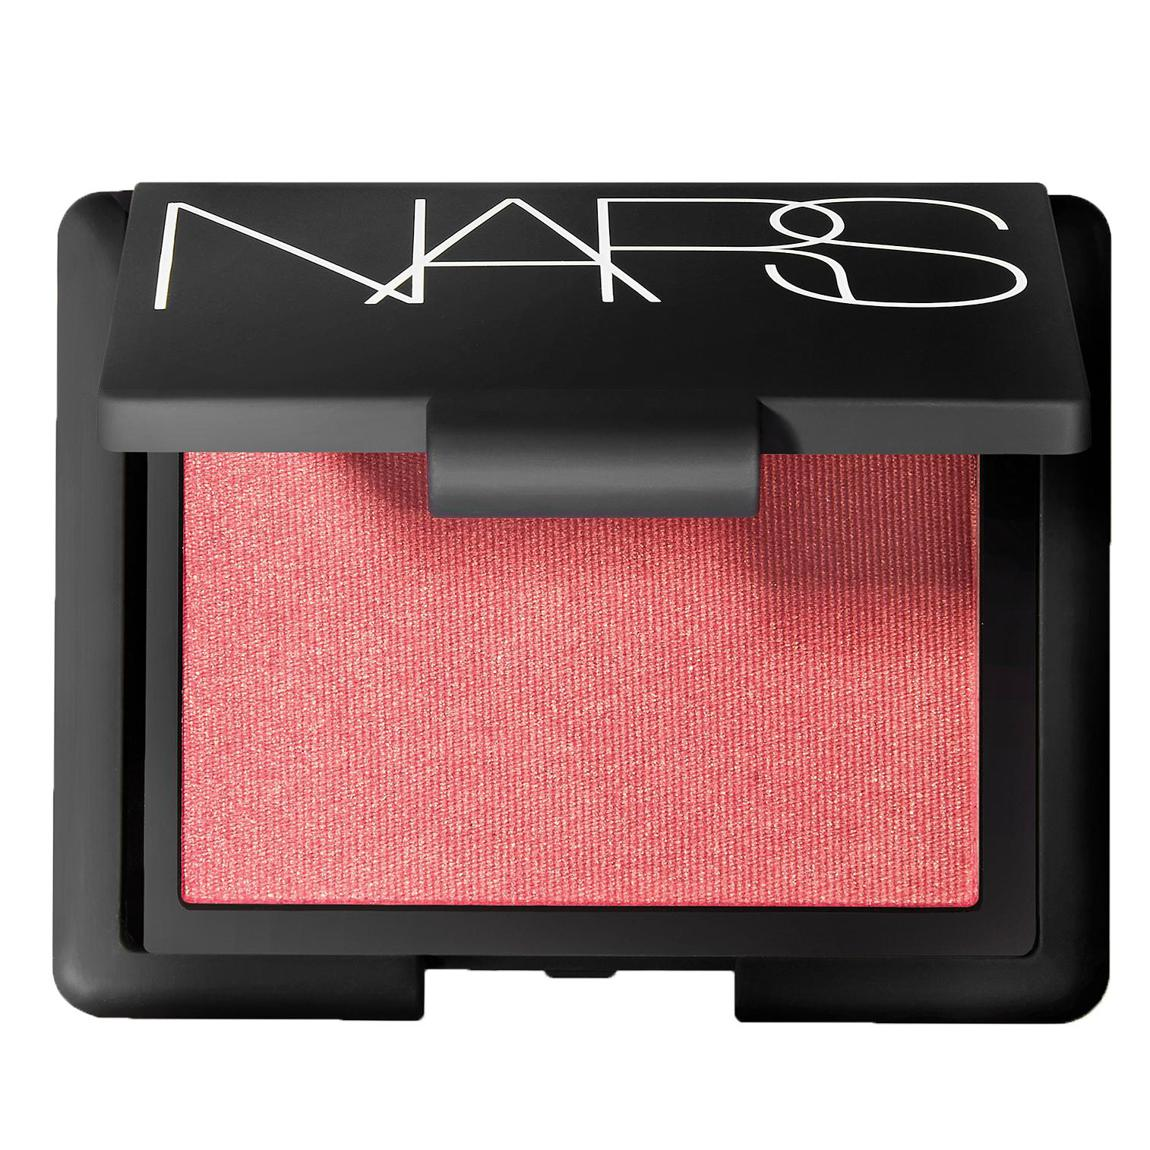 Powder blush from the brand Nars